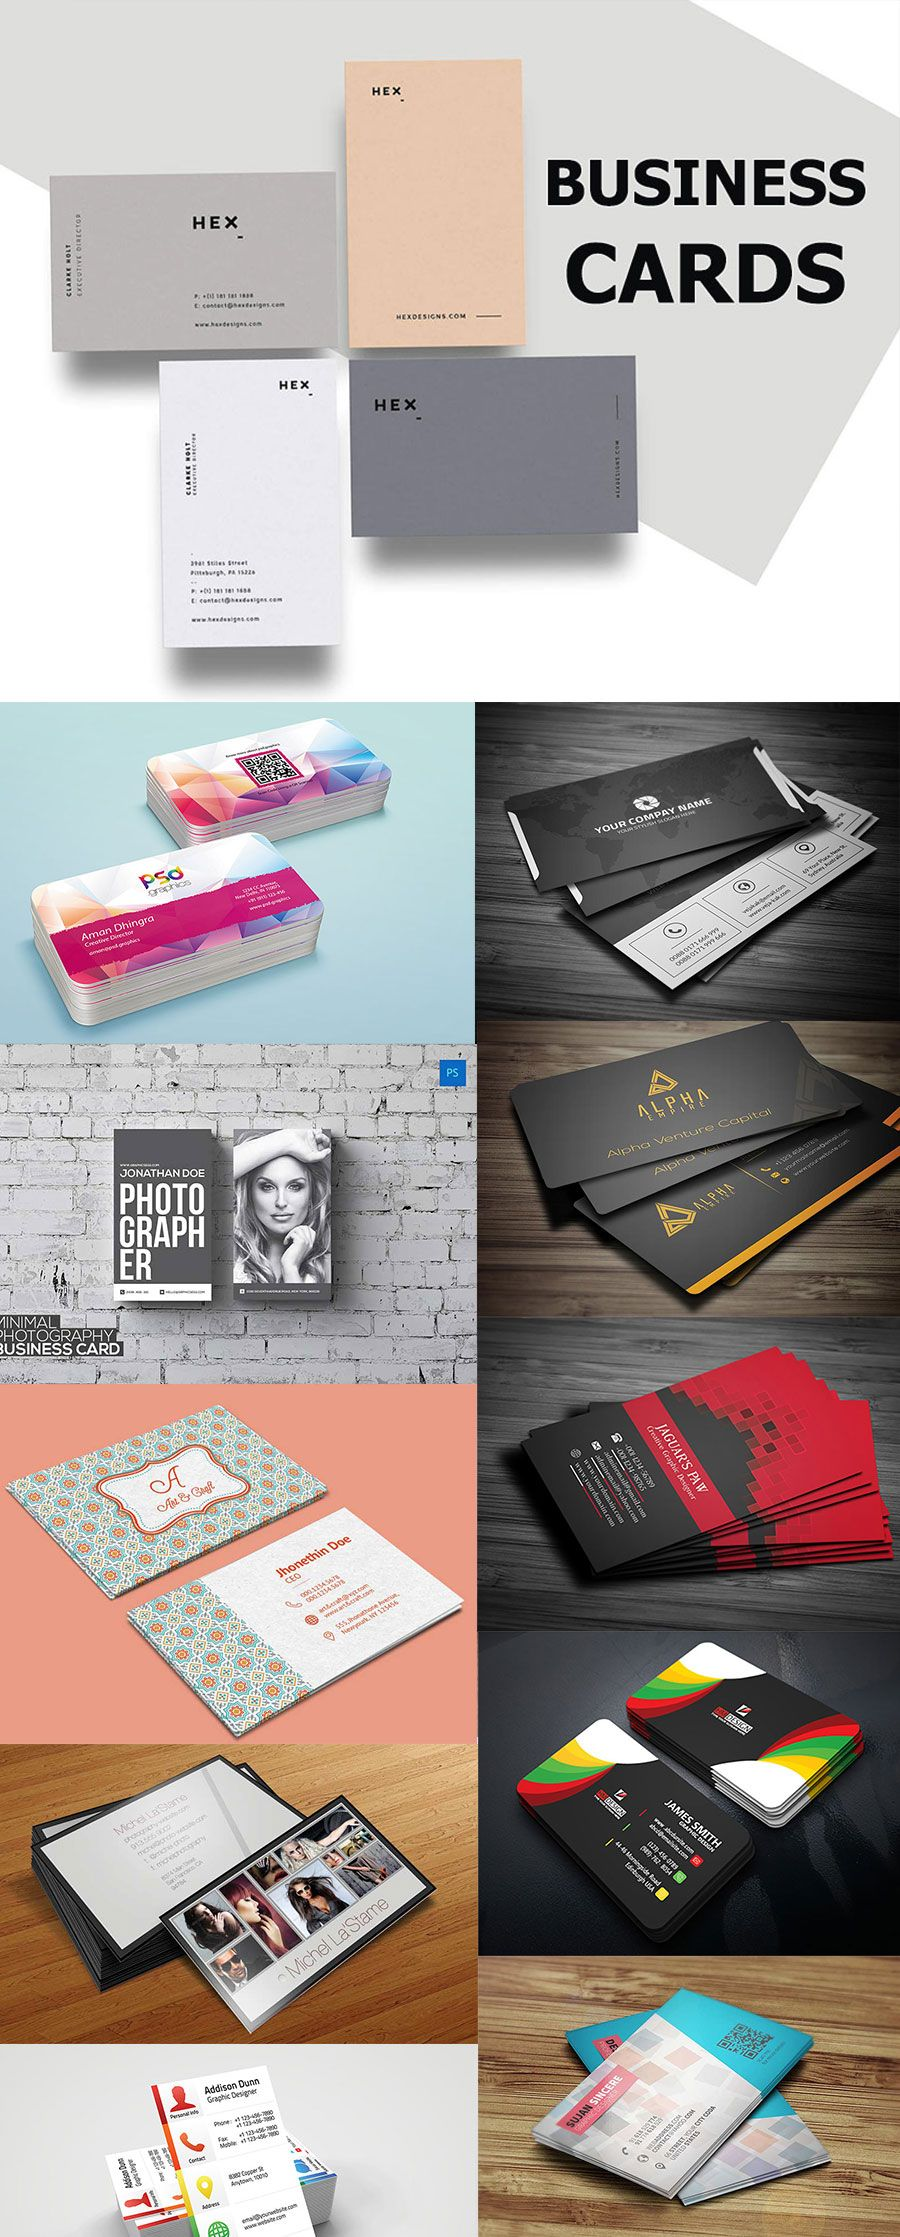 Best free business card templates psd to download business card best free business card templates psd to download reheart Images